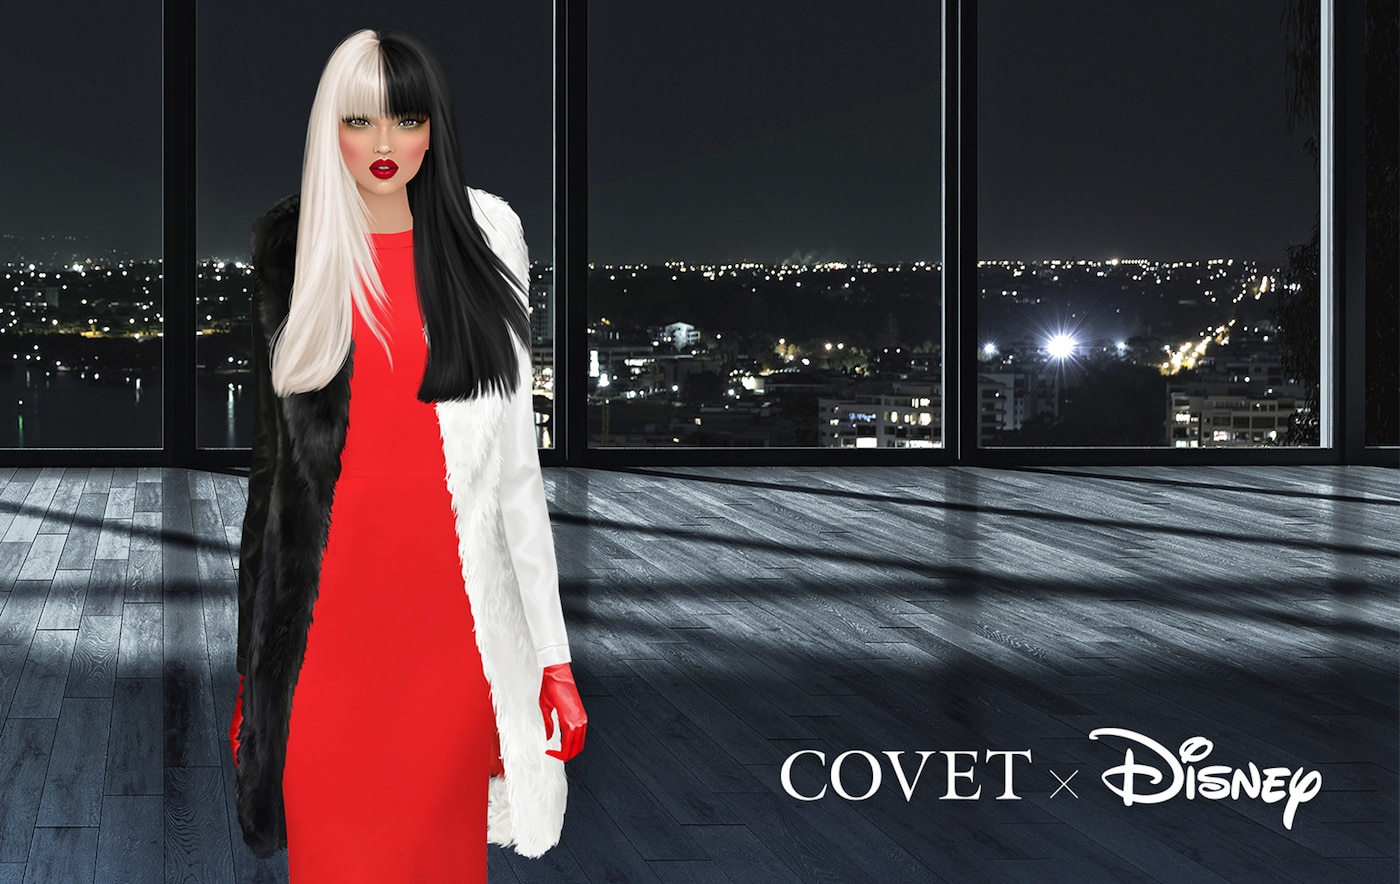 A different outfit look for Cruella de Vil from Covet x Disney